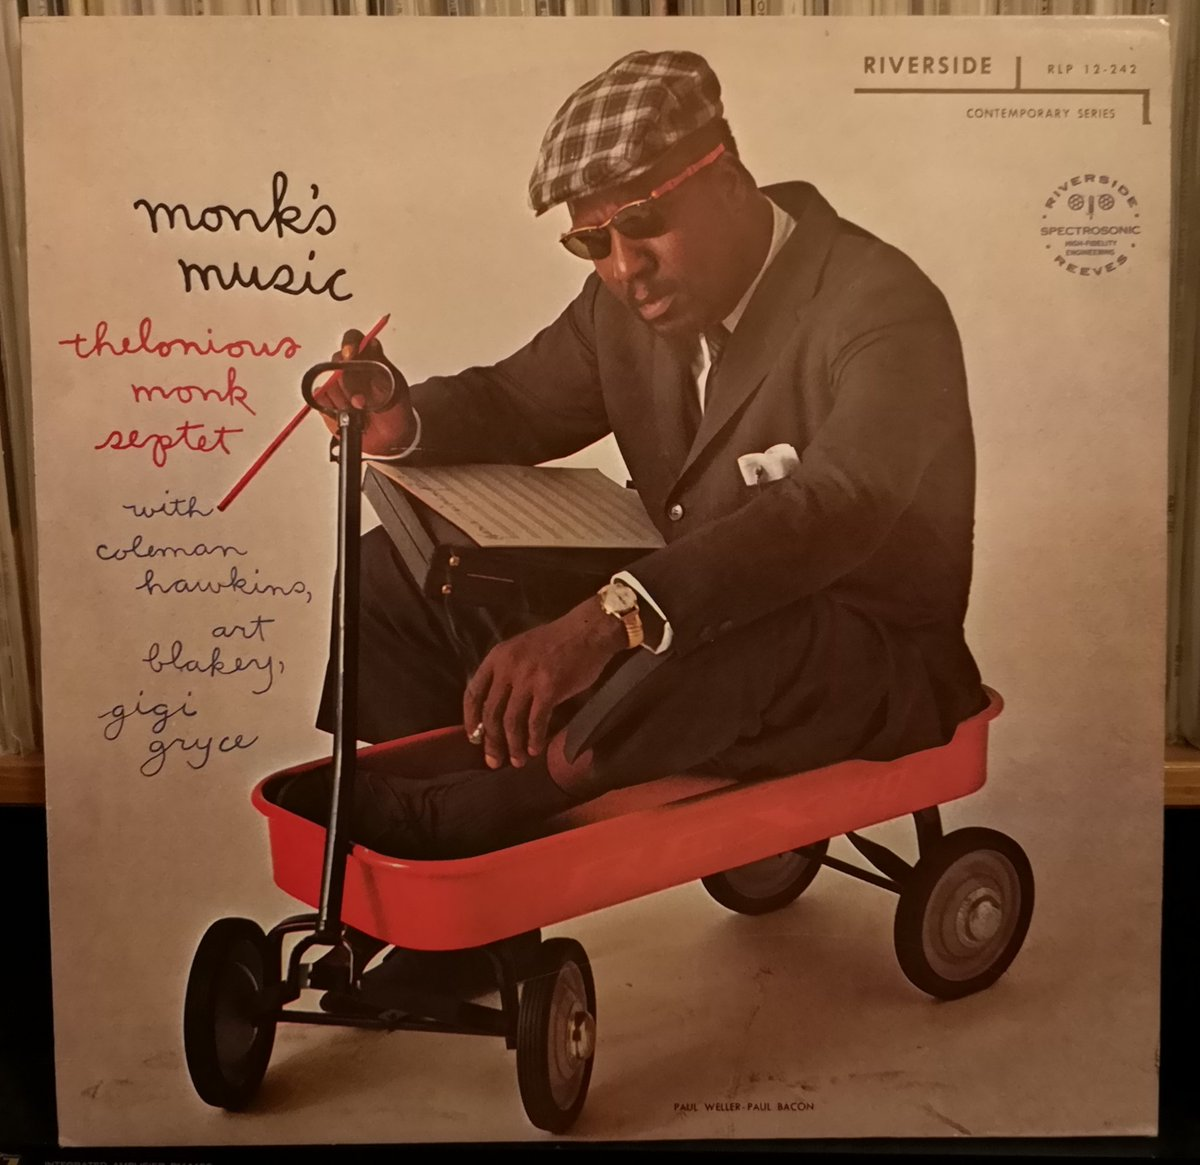 #NowPlaying #nowspinning a #Jazz #legend perfect #sundayvibes Monk's Music - Thelonious Monk Septet  Released on Riverside Records in 1957, featuring Gigi Gryee, Coleman Hawkins, John Coltrane, Wilbur Ware & Art Blakey #vinylrecords #BOP #hardbop #vinylcollectionpic.twitter.com/lAzZ9a3XAM